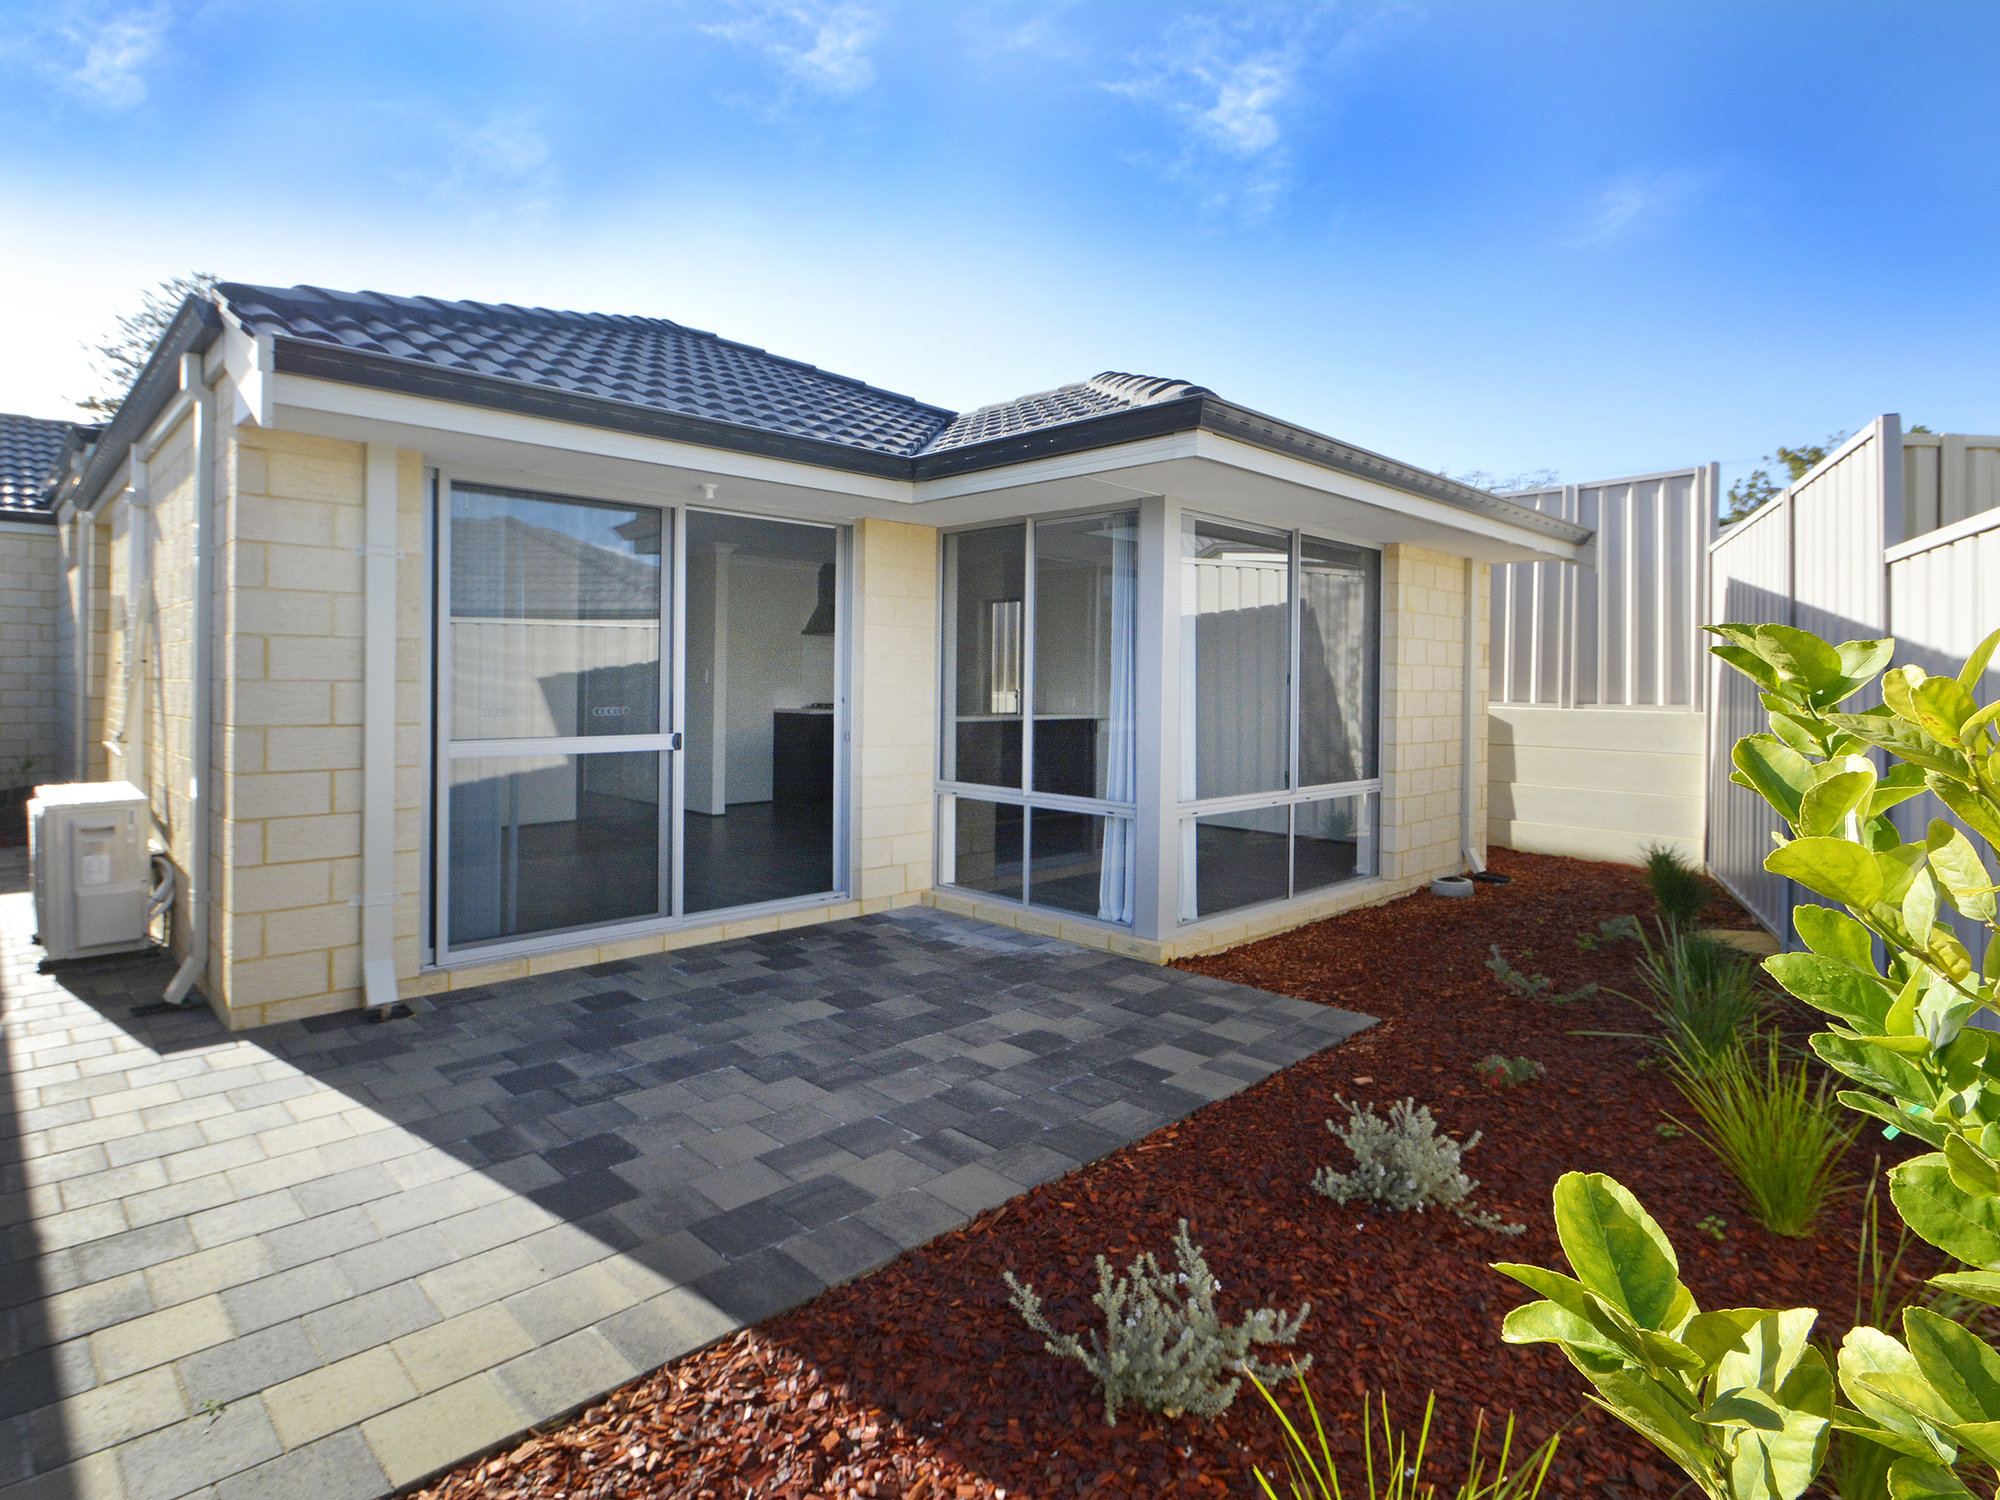 AustAsia Real Estate has six 'off the plan' 3 Bed, 2 Bath units For Sale in Westminster, all eligible for Government Grants of up to $30,000